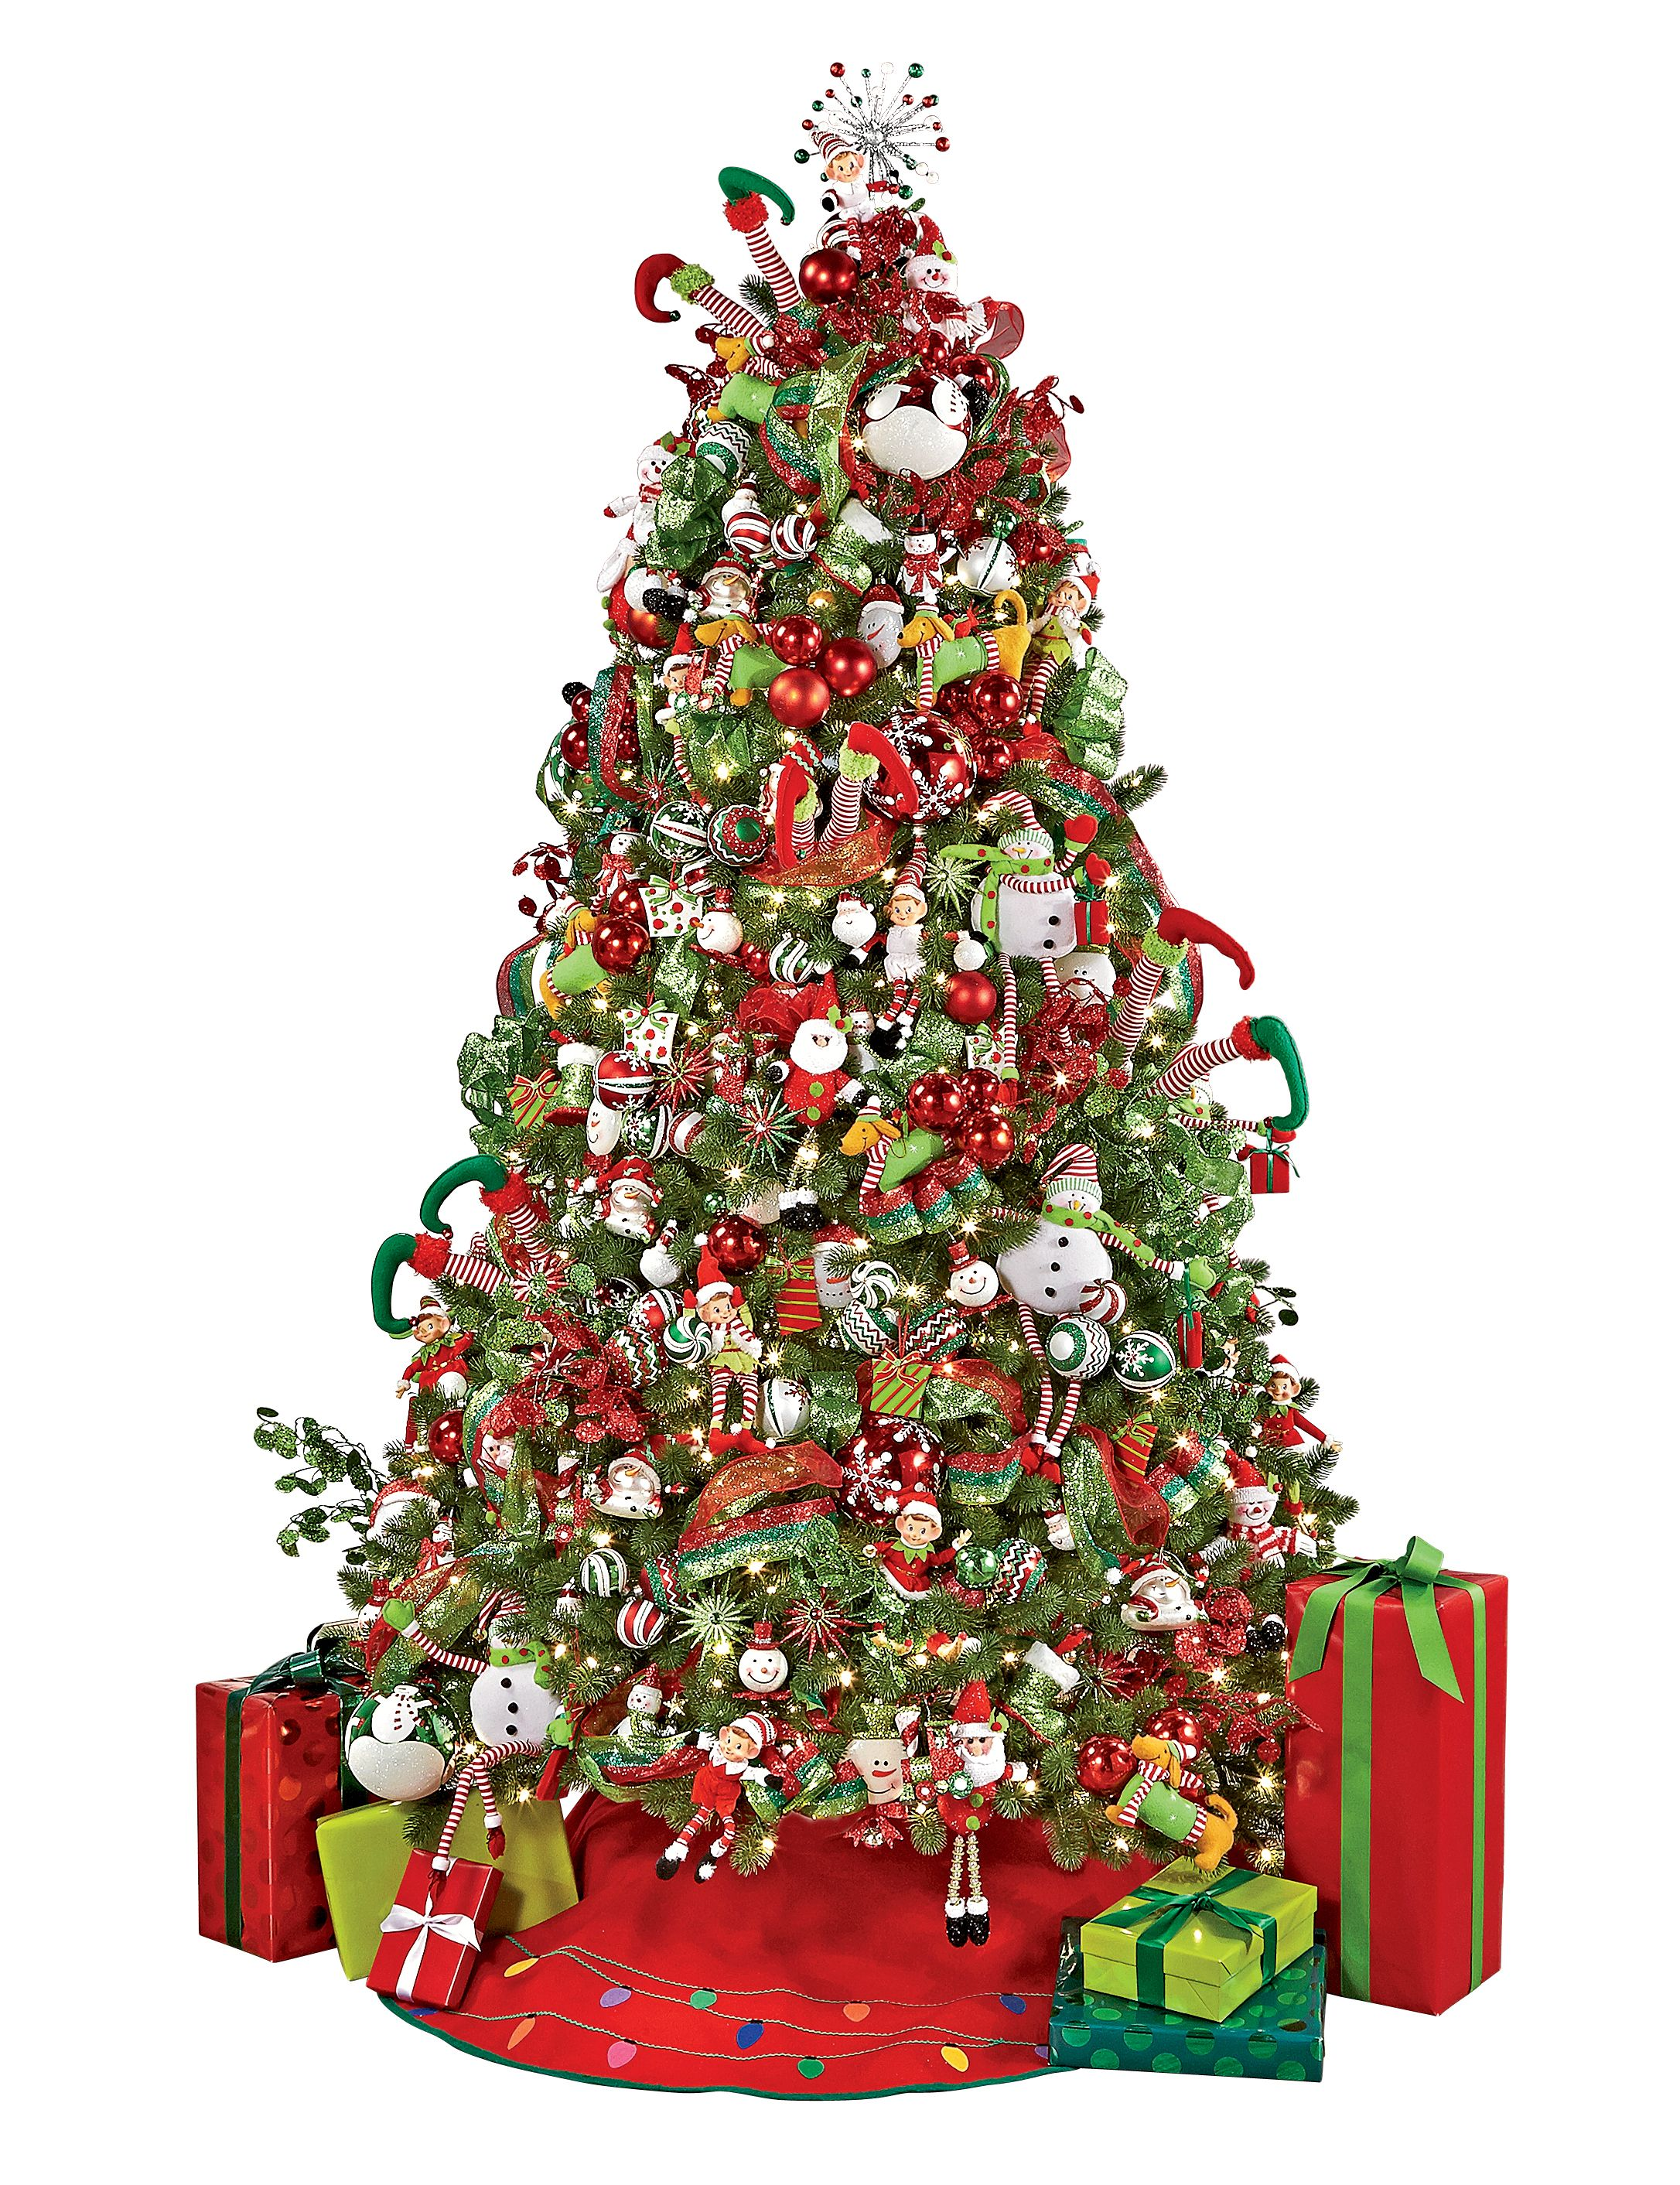 Jolly Holly Collection #Shopko Christmas Living Roomsxmas Treeschristmas Decorationsholiday Ideasmerrychristmas